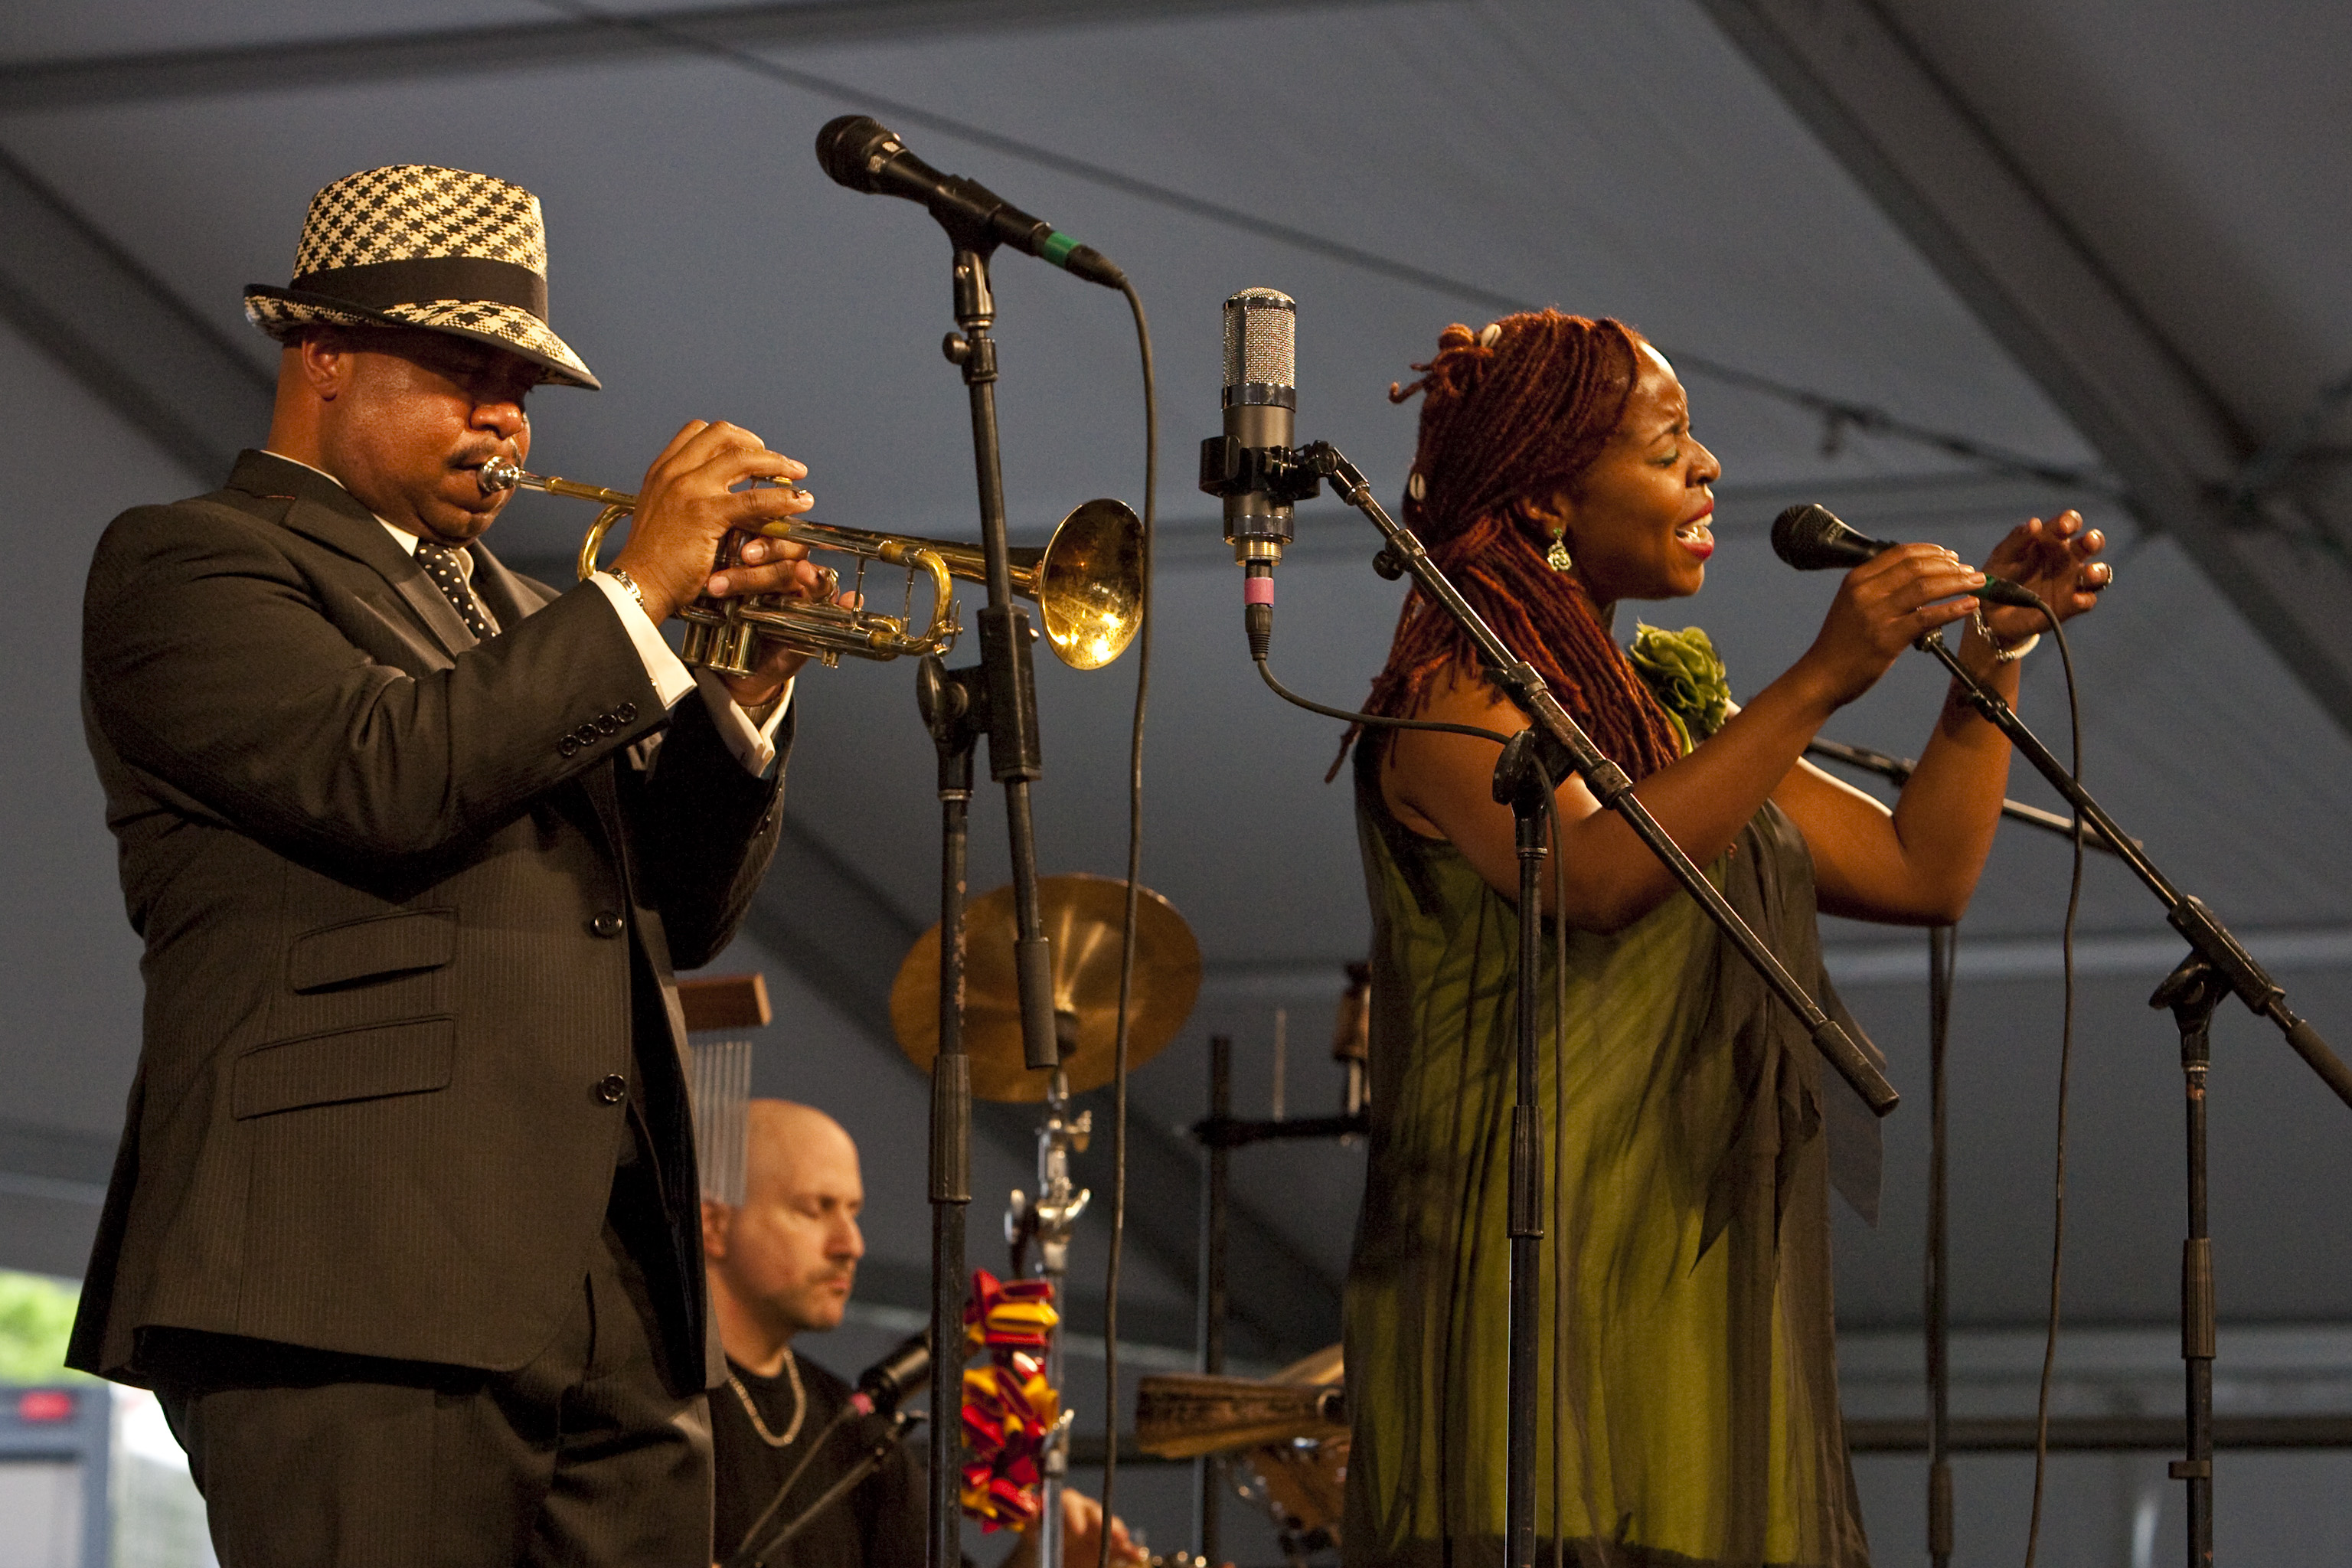 Nicholas Payton at the 40th Anniversary New Orleans Jazz & Heritage Festival, USA